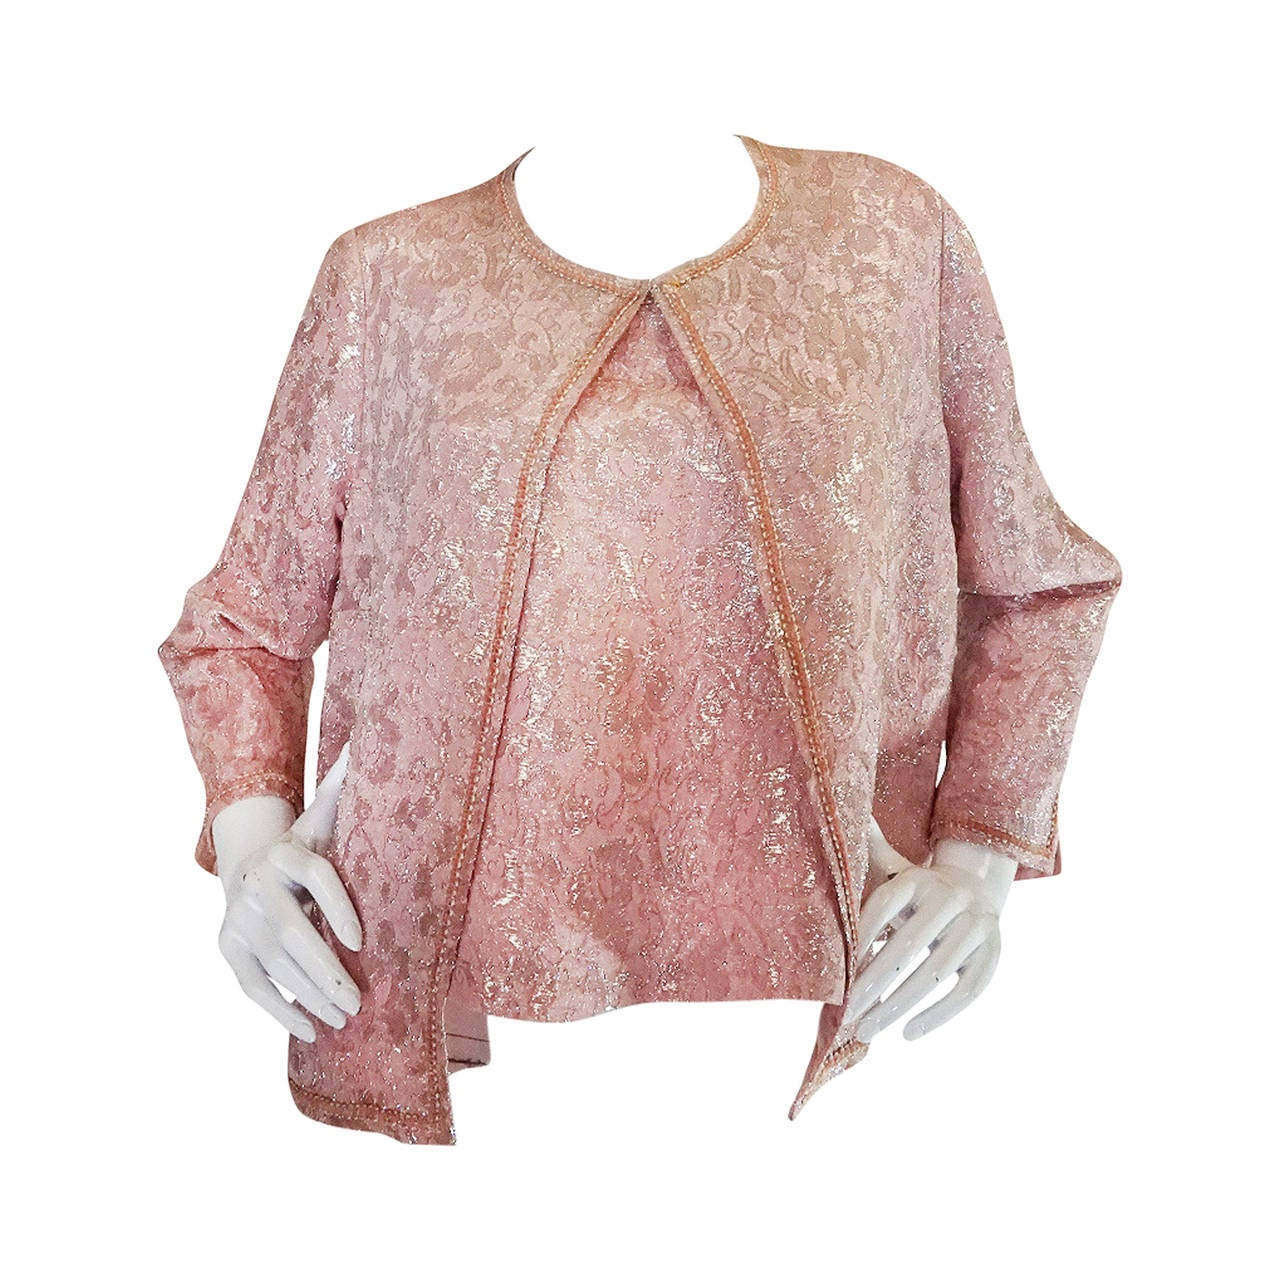 1962 chanel numbered haute couture jacket and shell at 1stdibs for Haute couture jacket